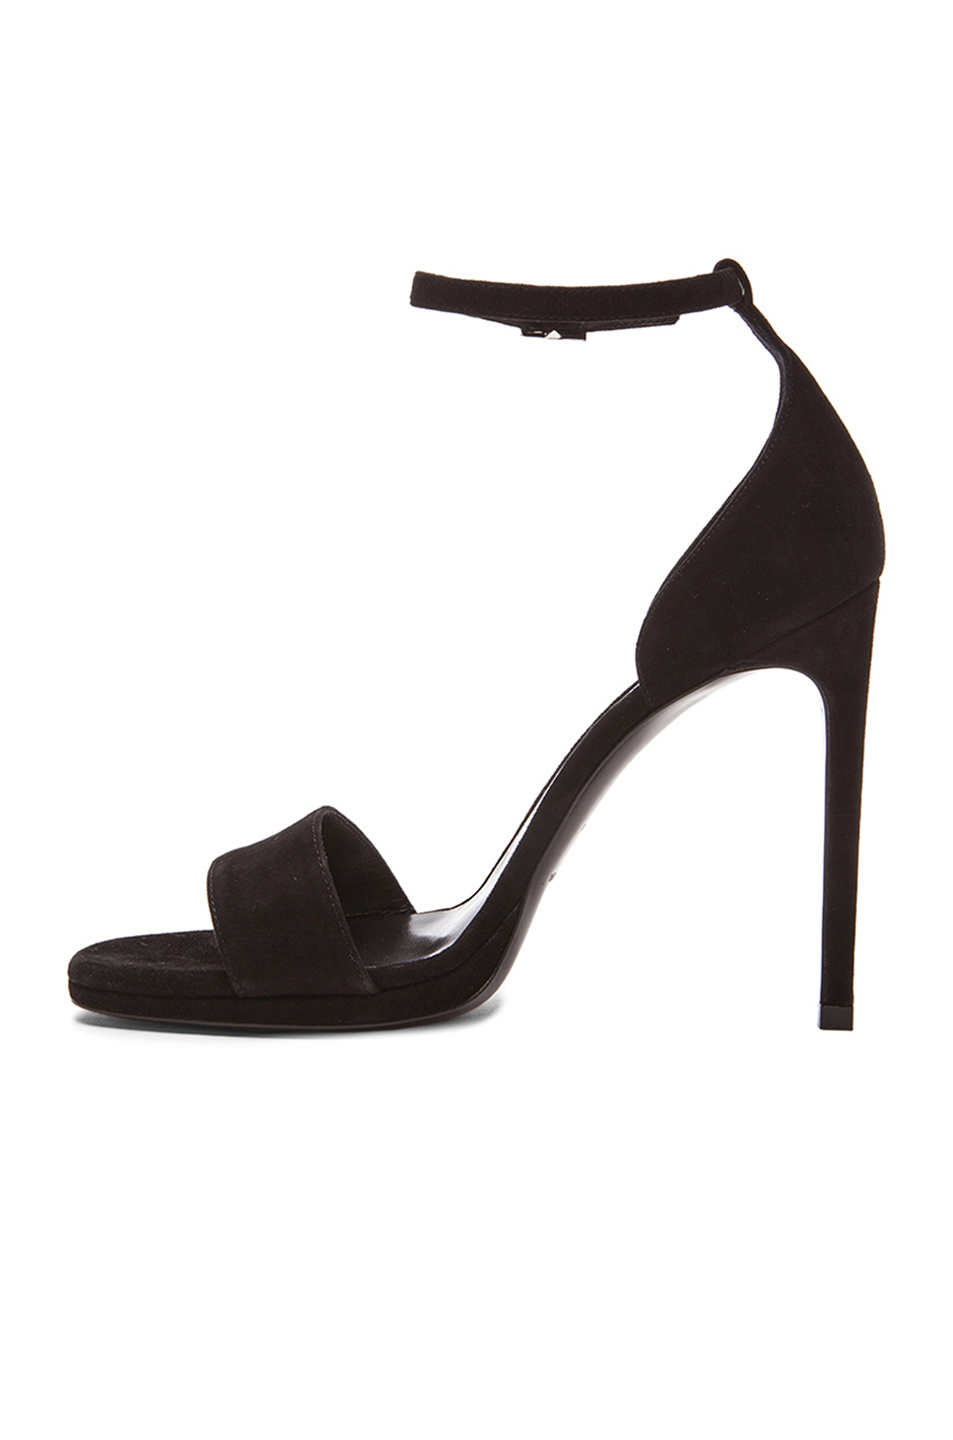 Lyst - Saint Laurent Jane Suede Sandals in Black 797486f2f03e